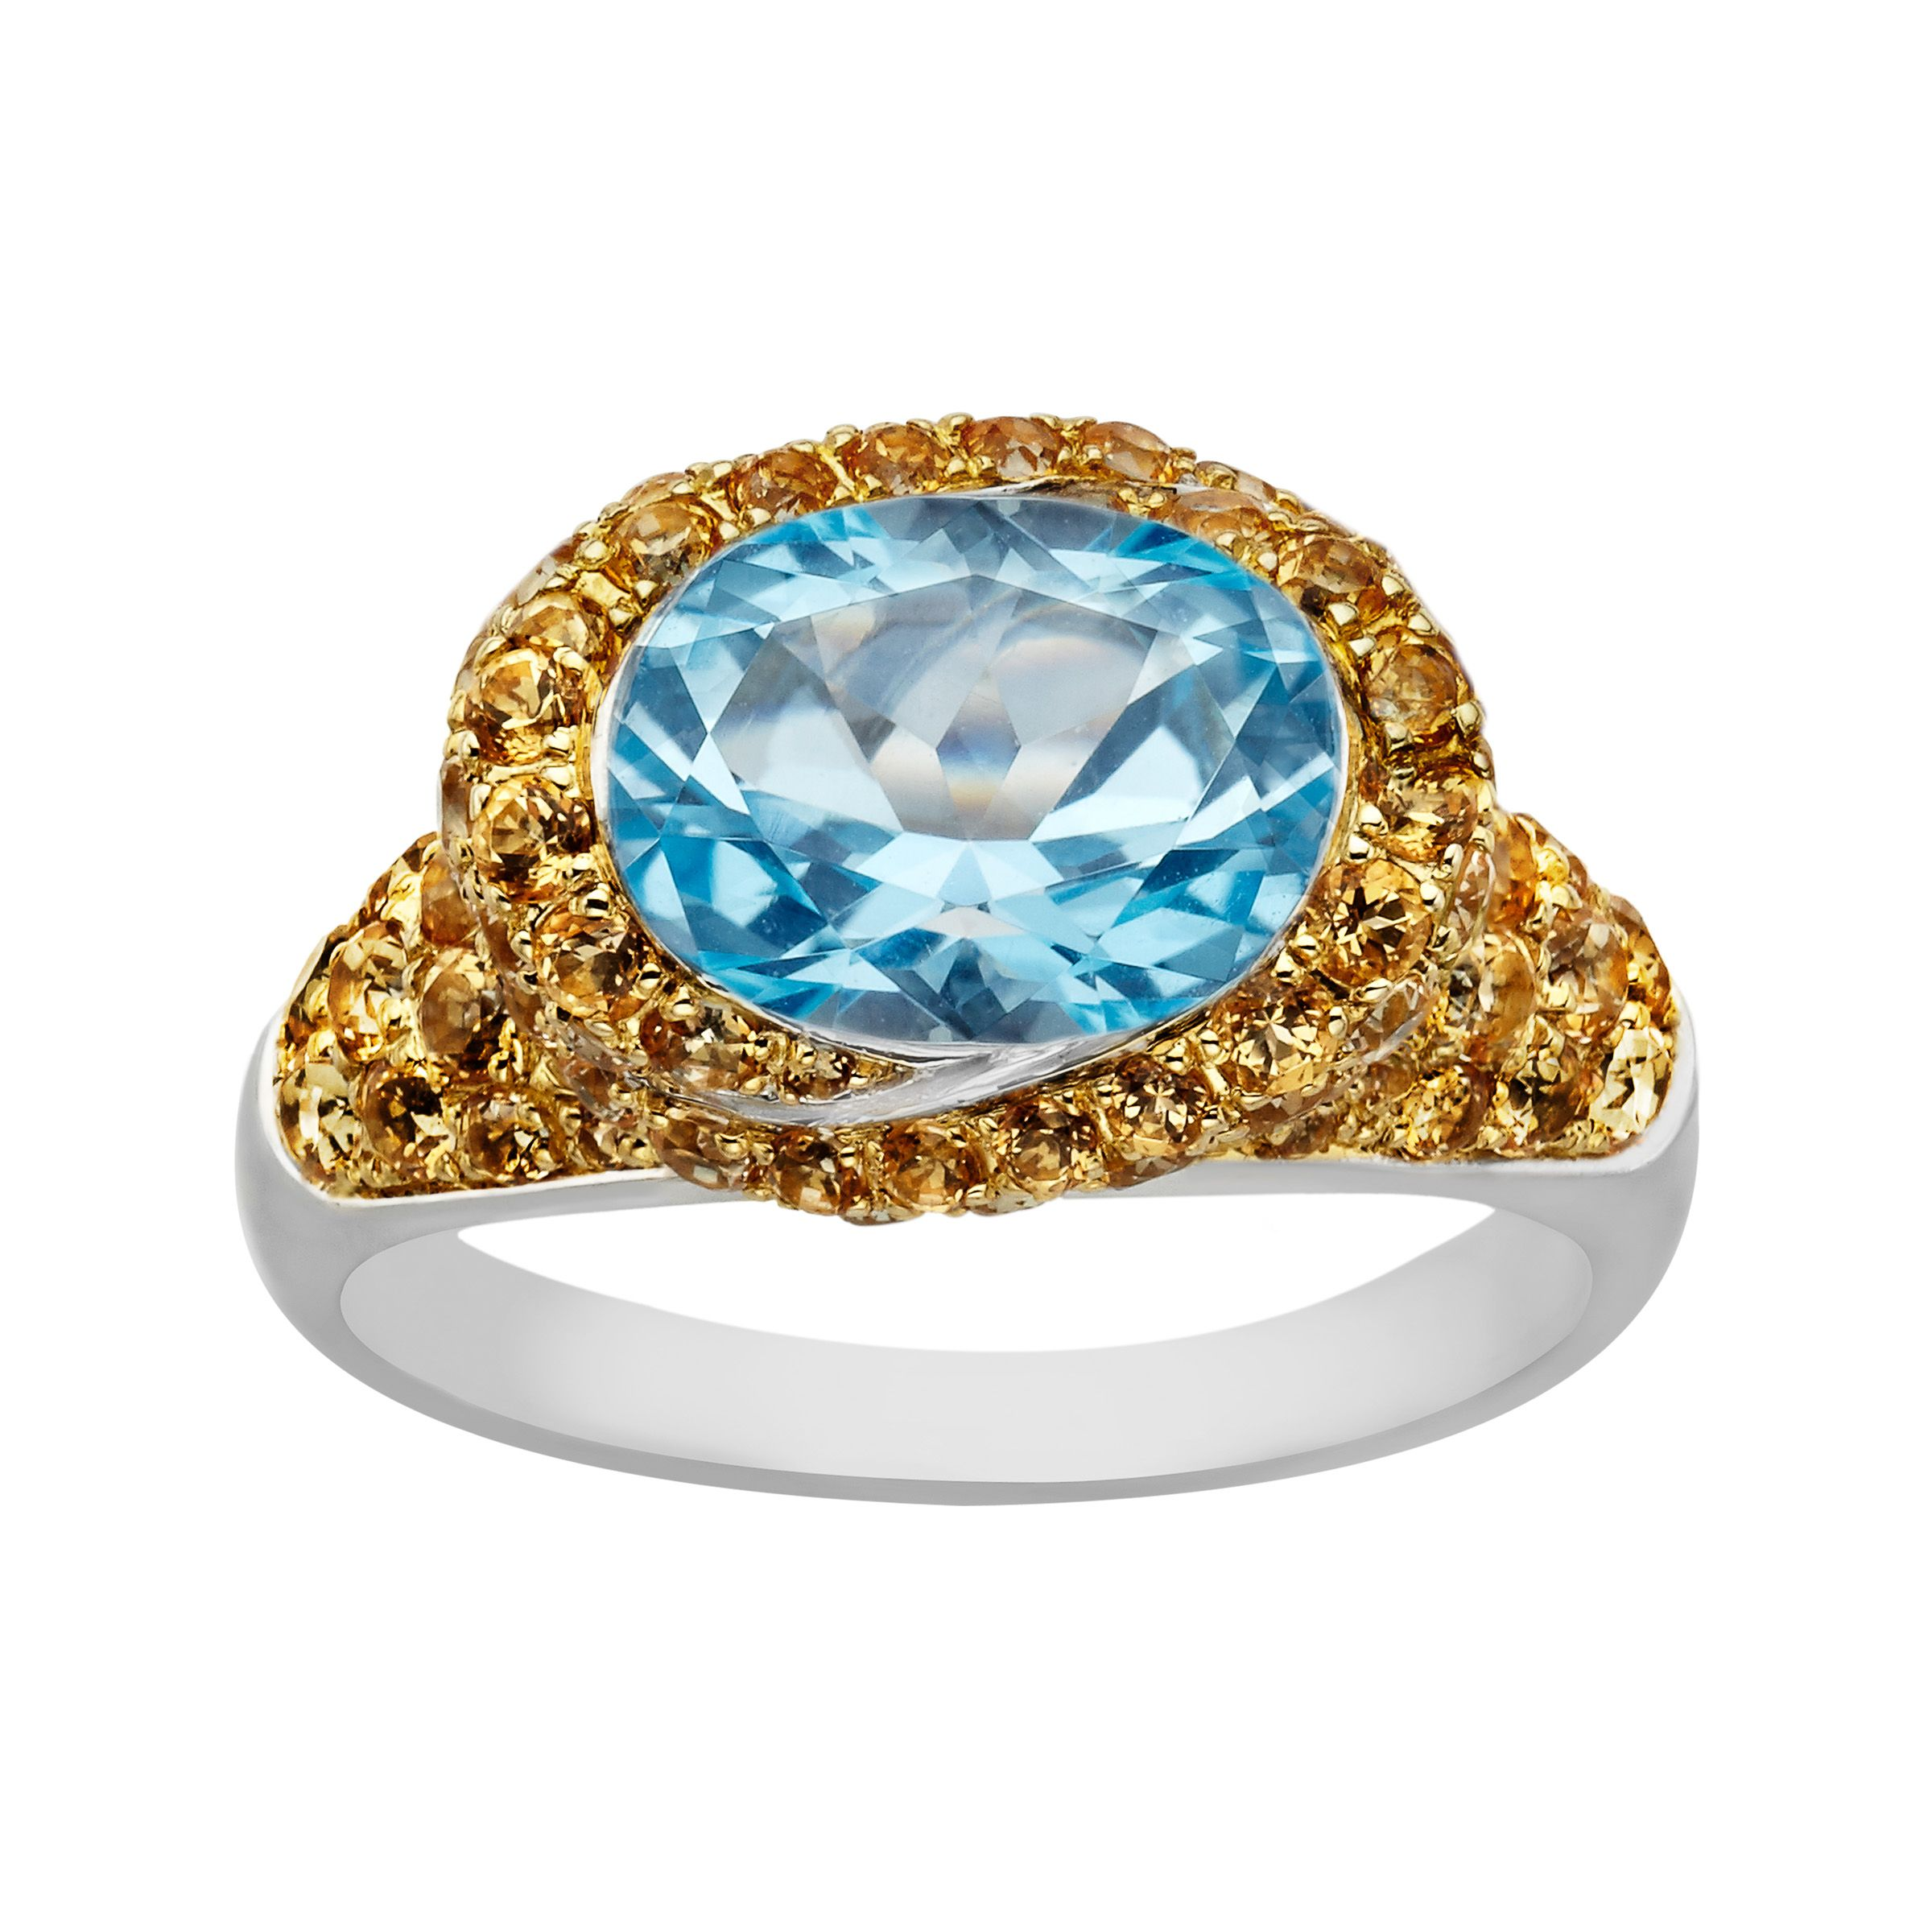 3 5/8 ct Swiss Blue and Honey Topaz Ring in Sterling Silver from Jewelry.com: From our 'Rainbow Topaz' Collection: Dazzling natural honey…